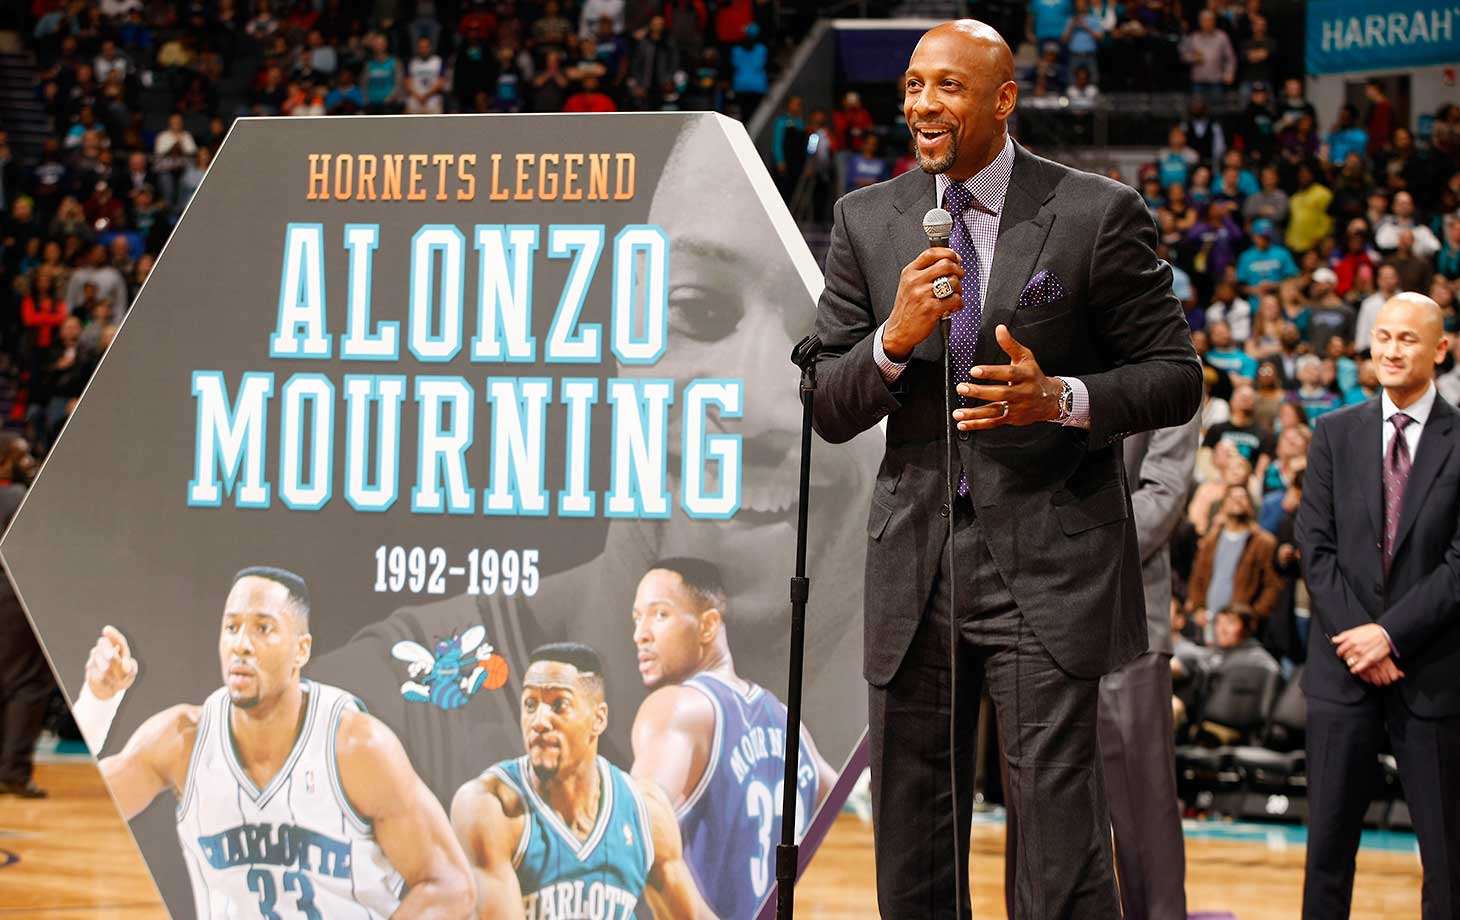 Former Charlotte Hornet Alonzo Mourning was honored at halftime of Friday night's game at the Time Warner Cable Arena in North Carolina.